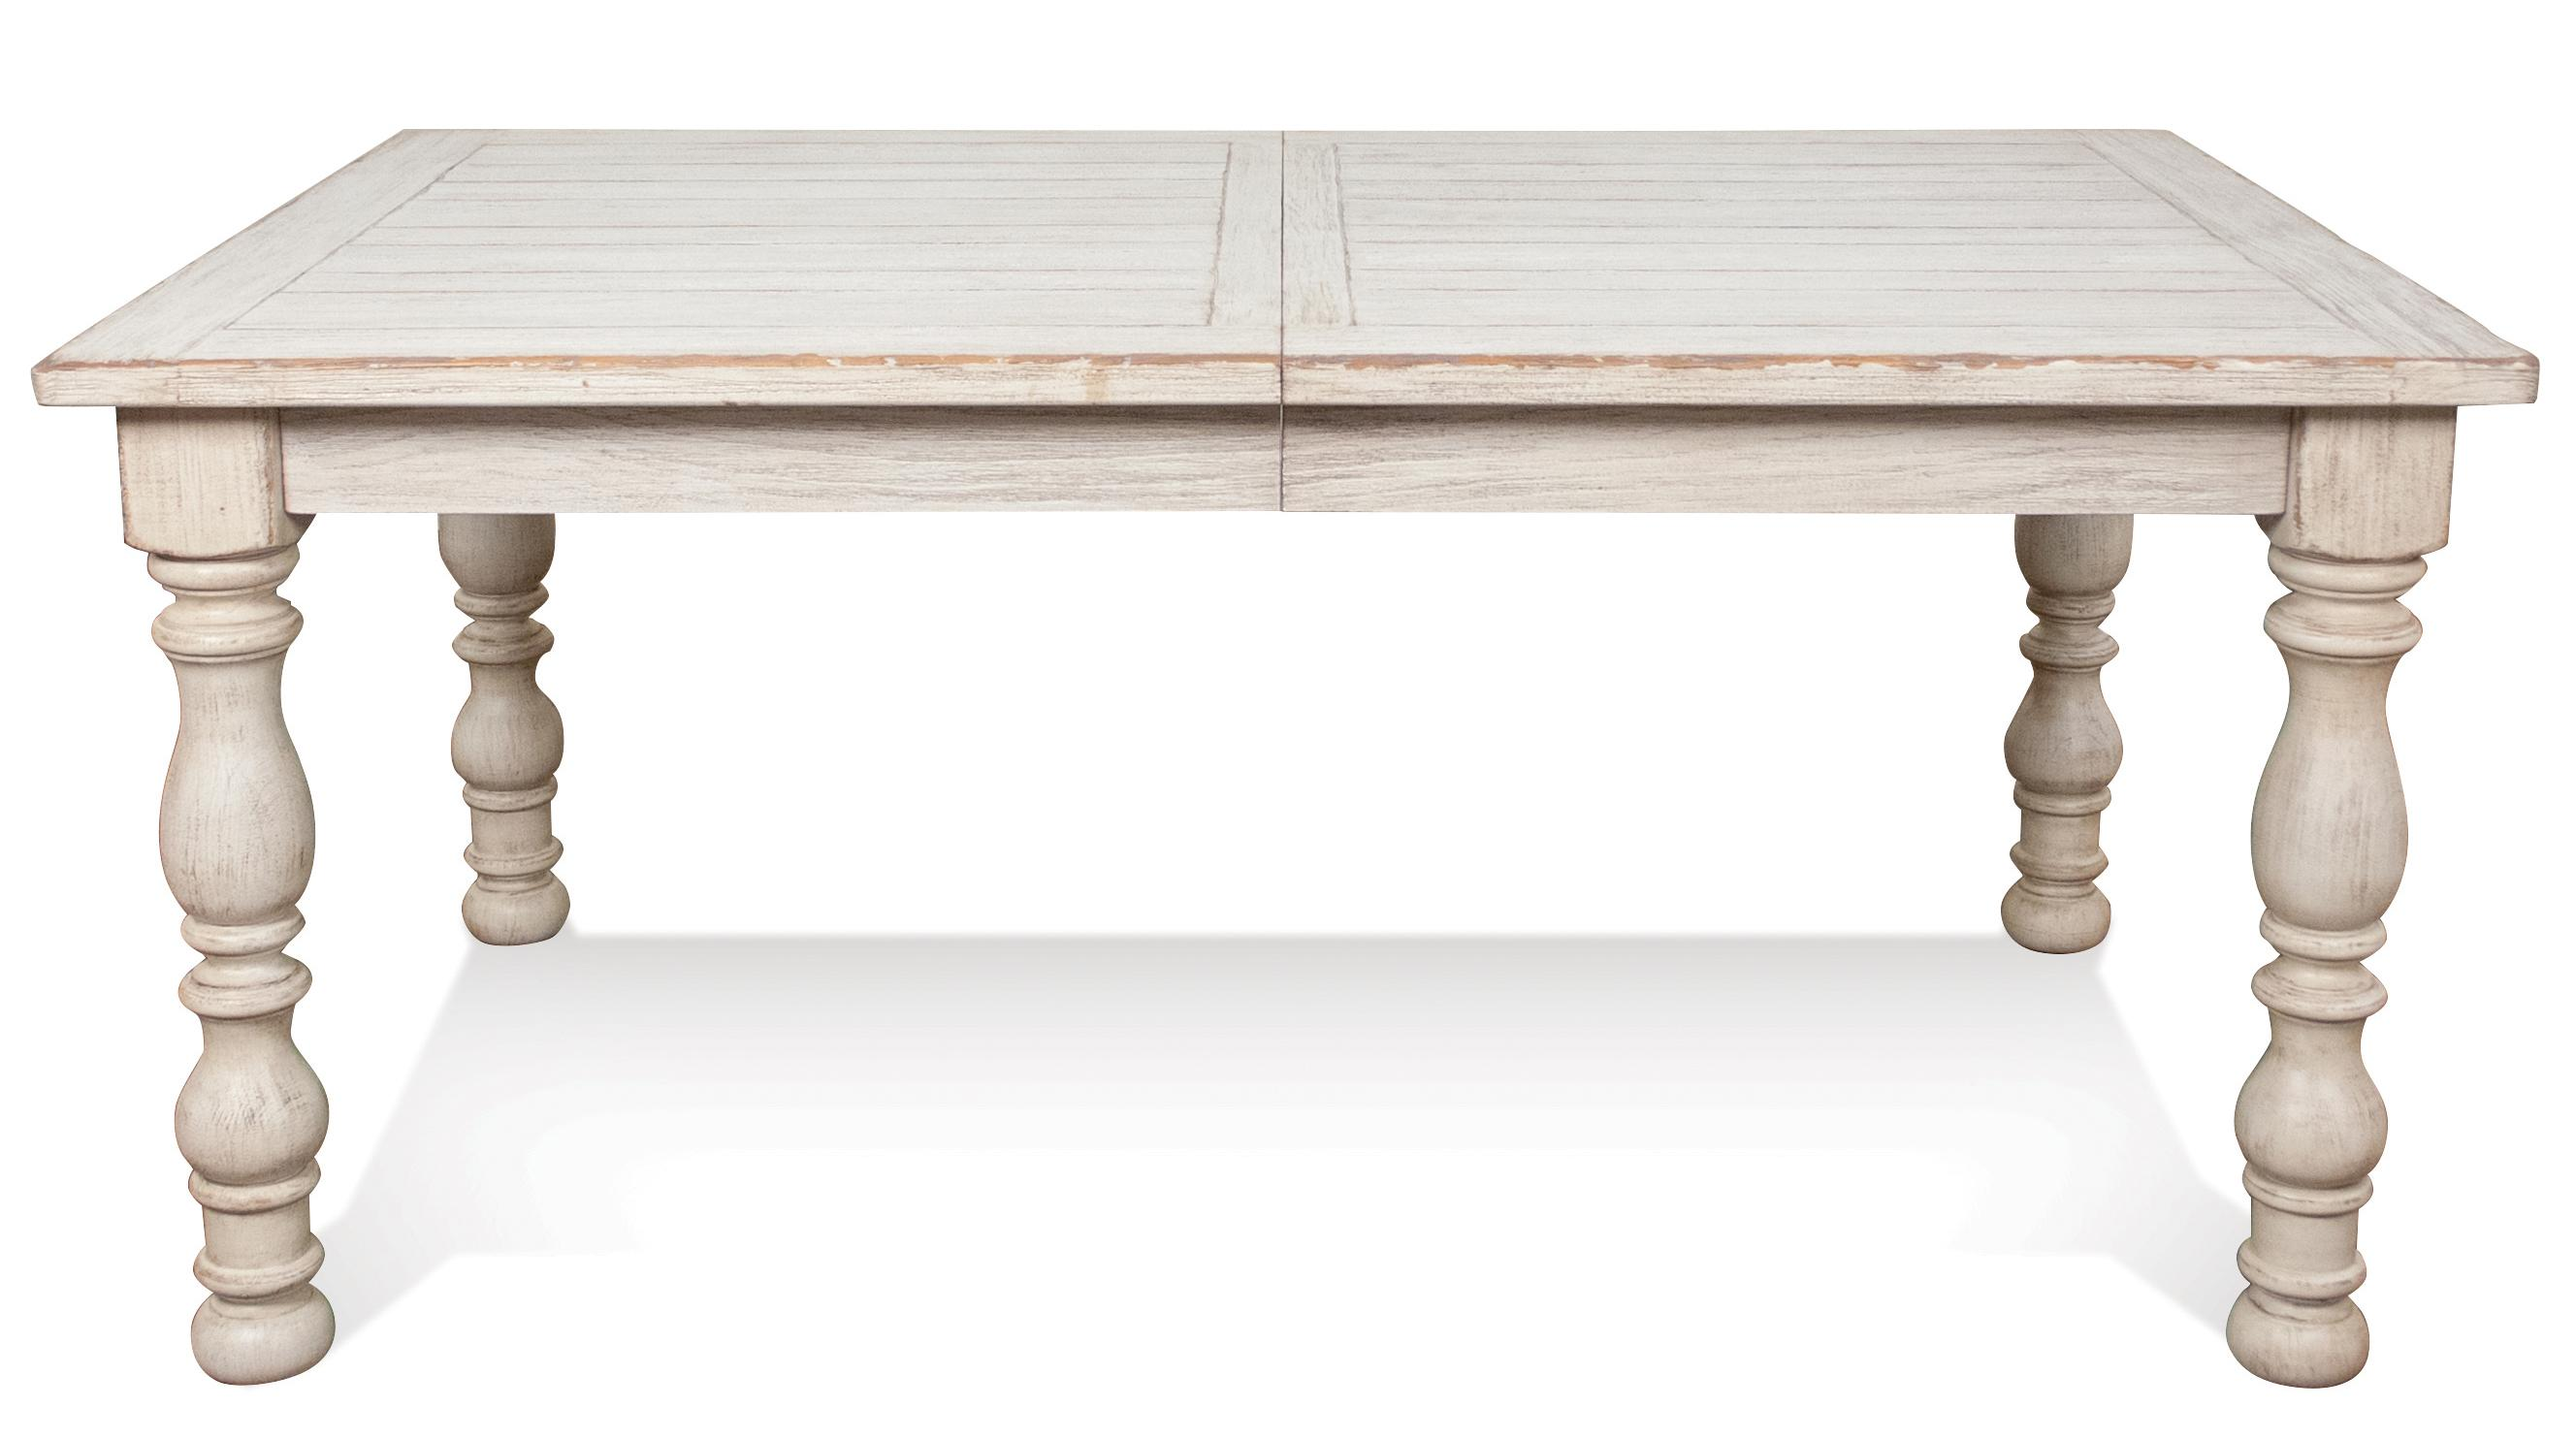 Rectangular Farmhouse Expandable Dining Table by Riverside  : products2Friversidefurniture2Fcolor2Faberdeen21221250 b0 from www.wolffurniture.com size 2656 x 1484 jpeg 212kB